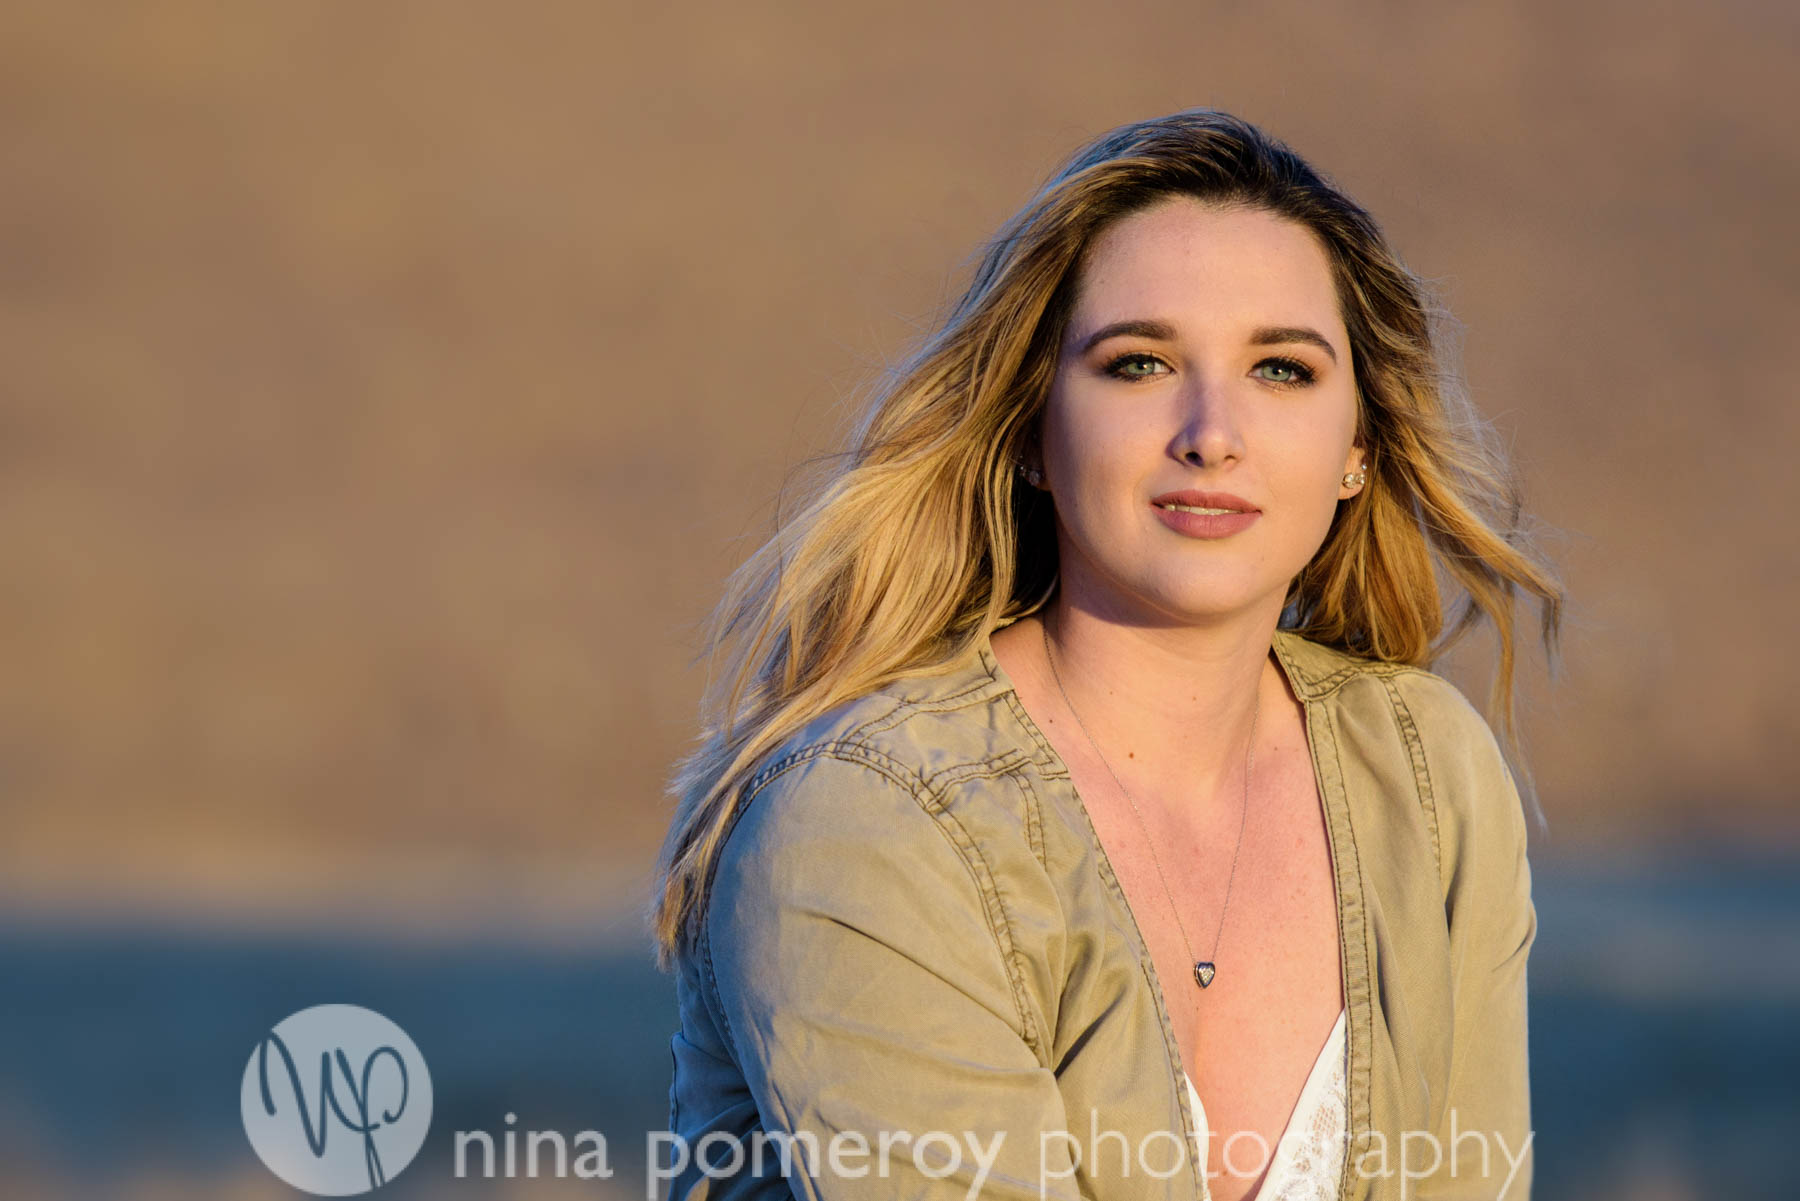 Dougherty Valley High School Senior Photos in the beautiful sunset light in San ramon valley hills by Nina Pomeroy